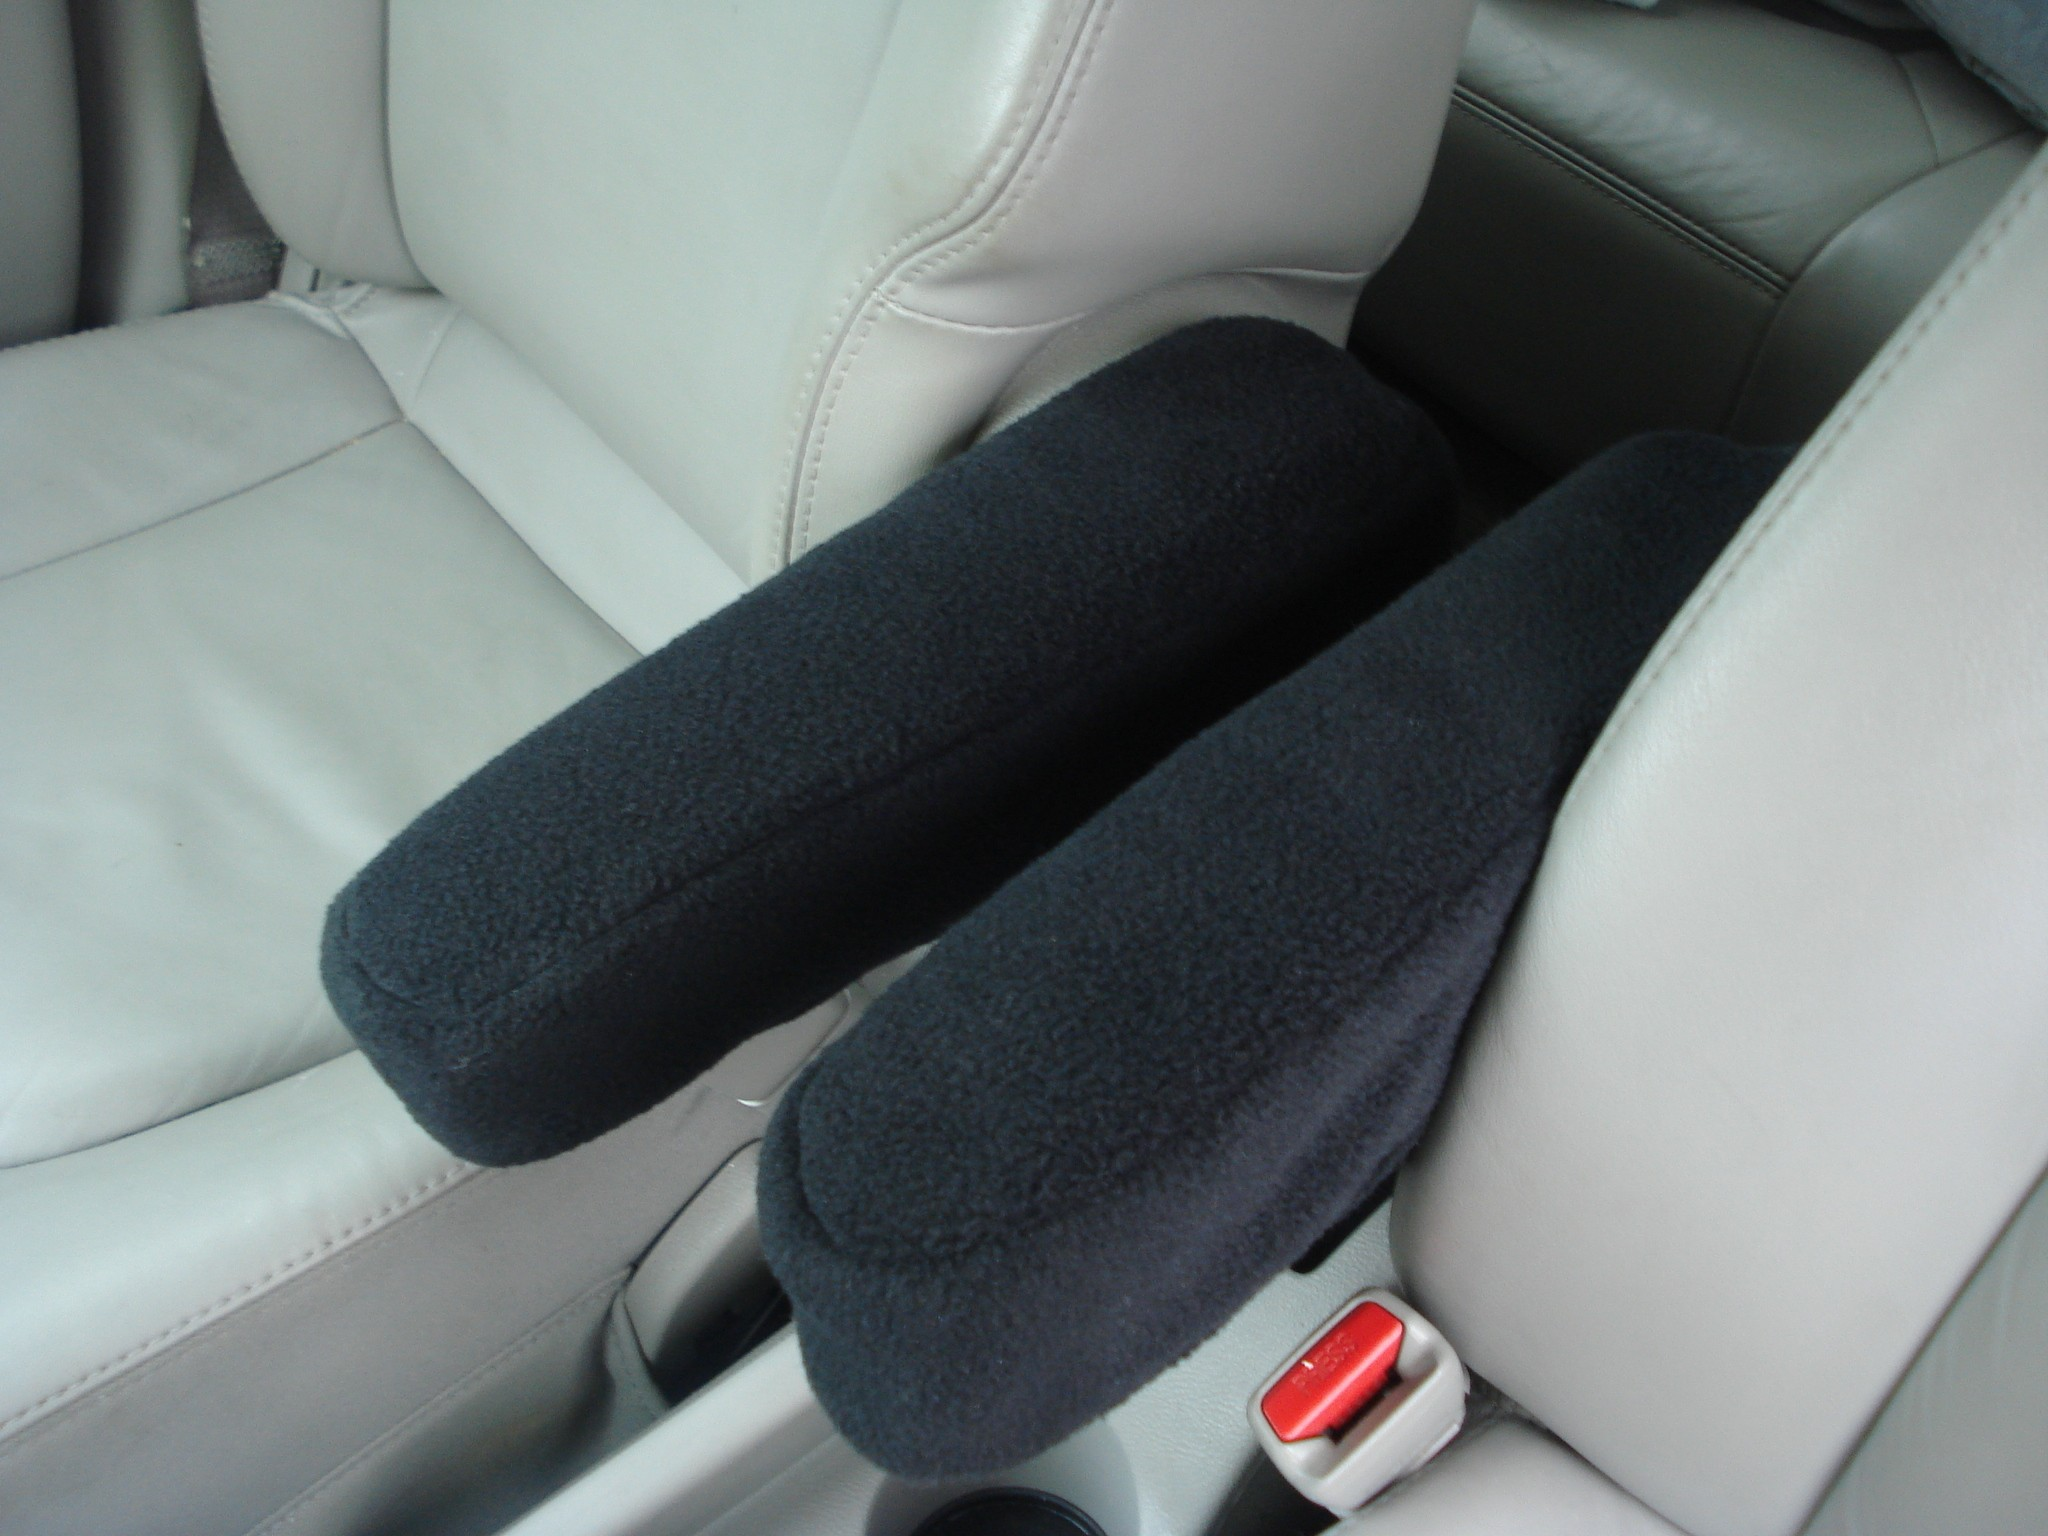 Honda Odyssey 2012-17- Armrest Covers For Front Bucket seats- Neoprene Material